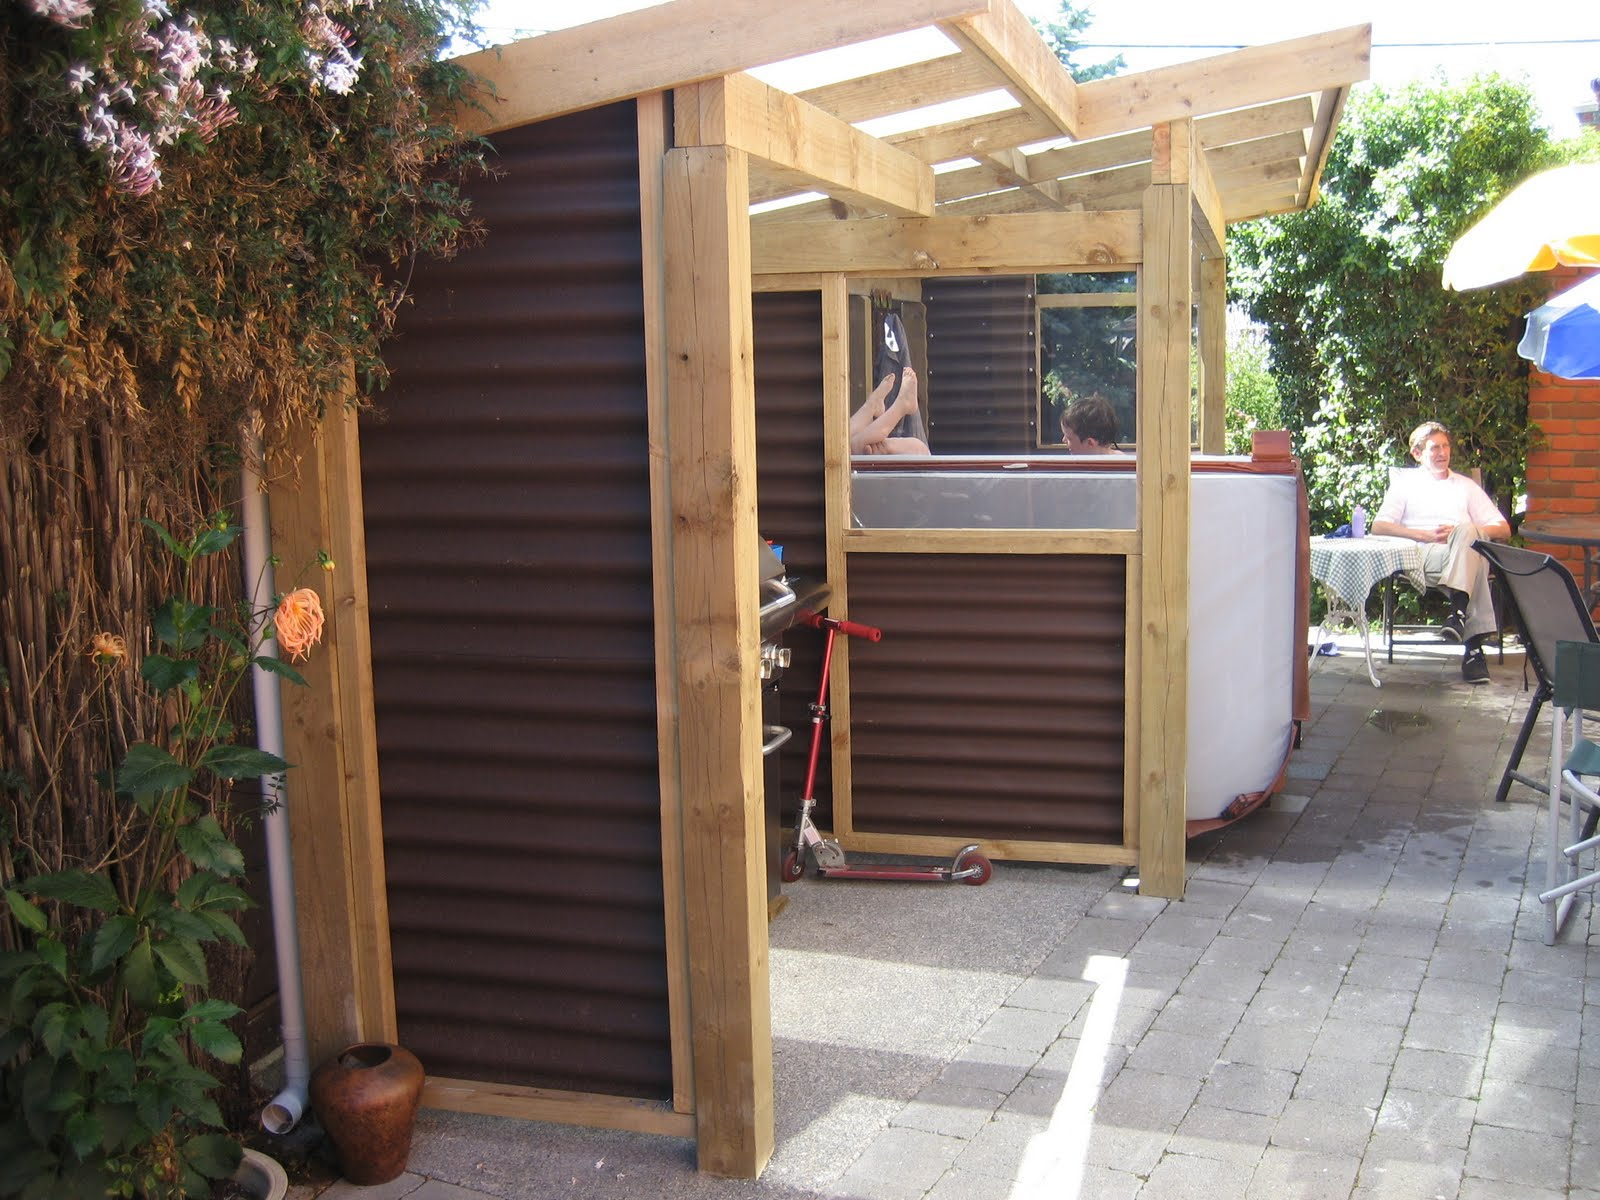 Barbecue Shelter Plans : Architectural draughting services spa bbq shelter